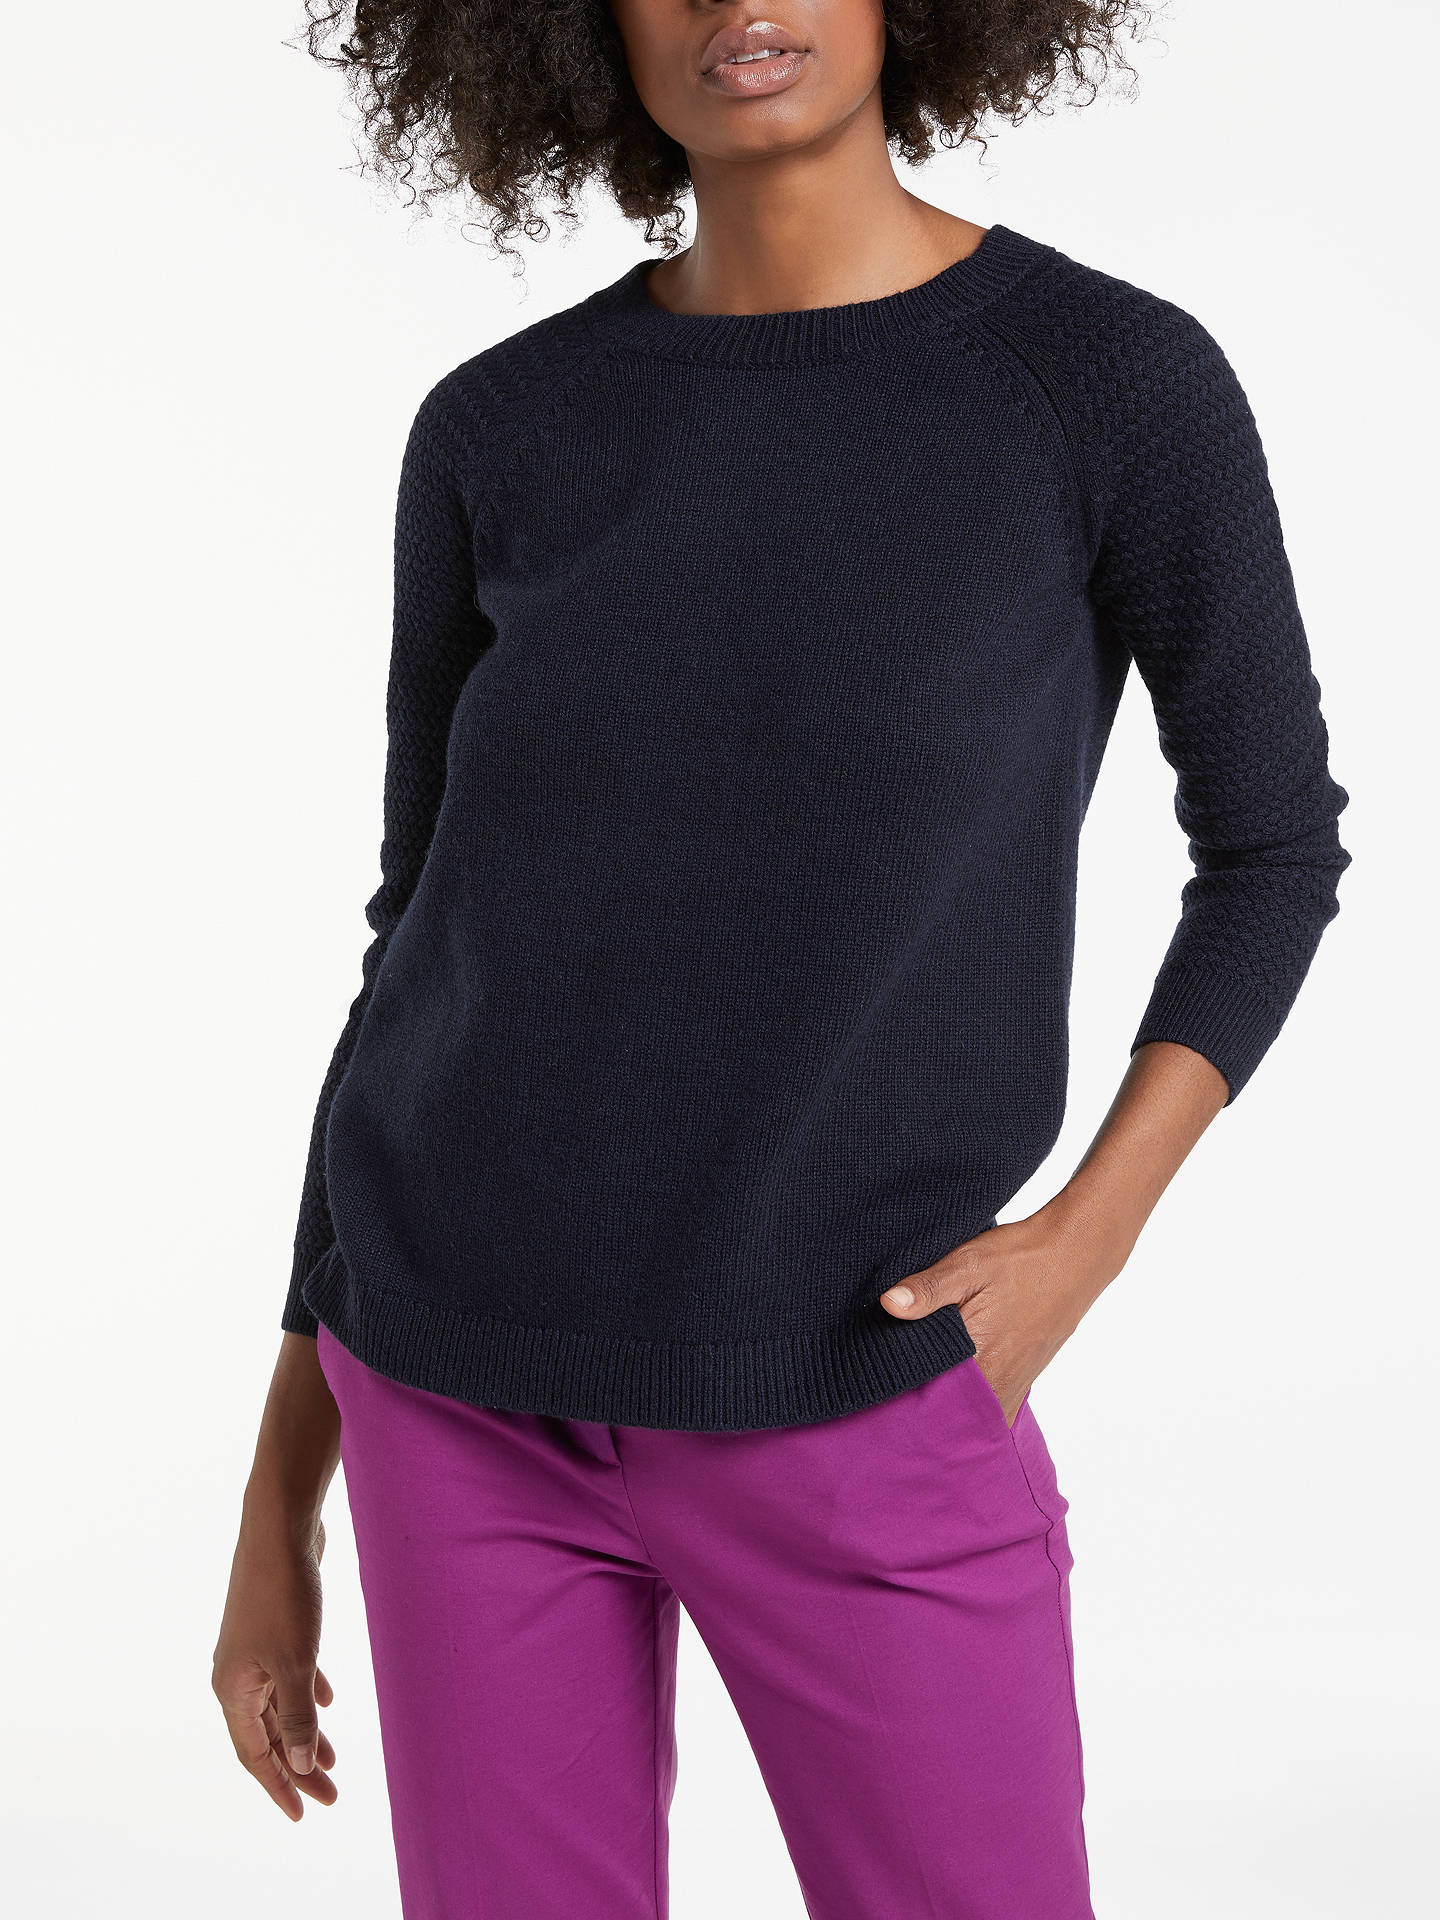 BuyBoden Avery Button Back Jumper, Navy, XS Online at johnlewis.com